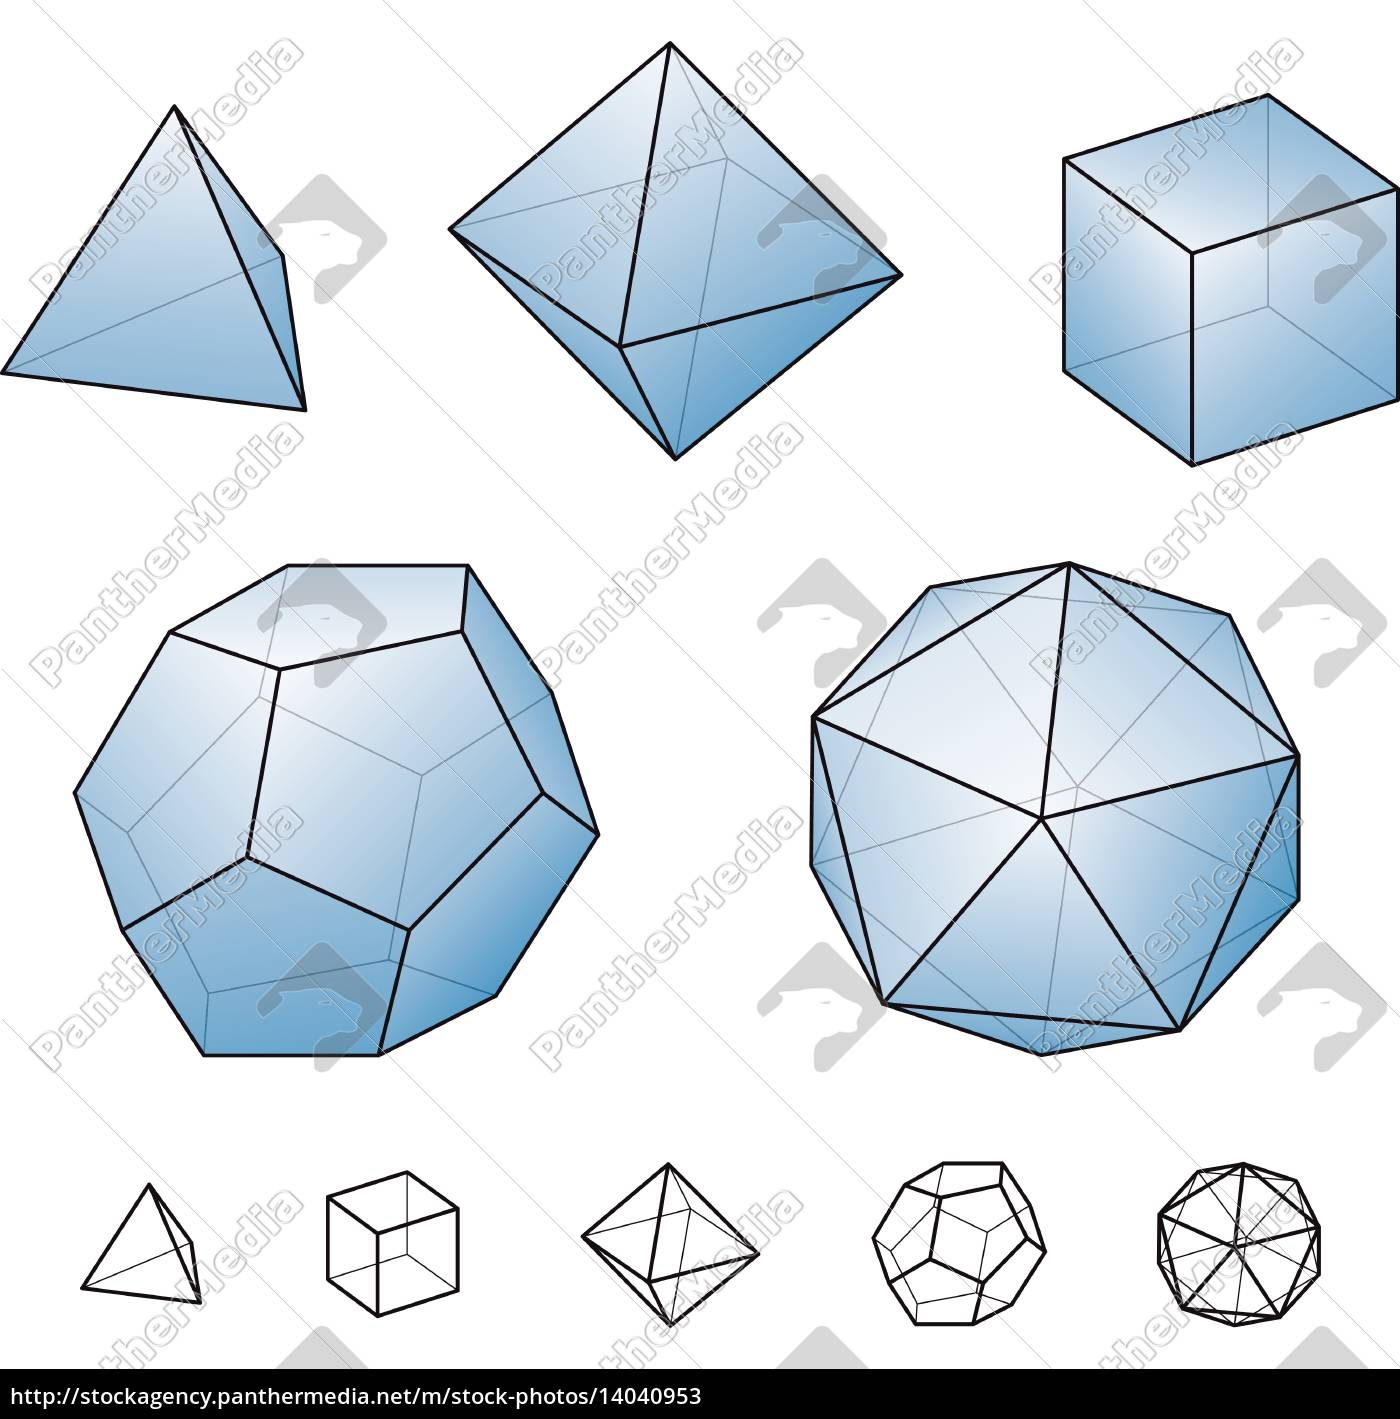 platonic, solids, with, blue, surfaces - 14040953